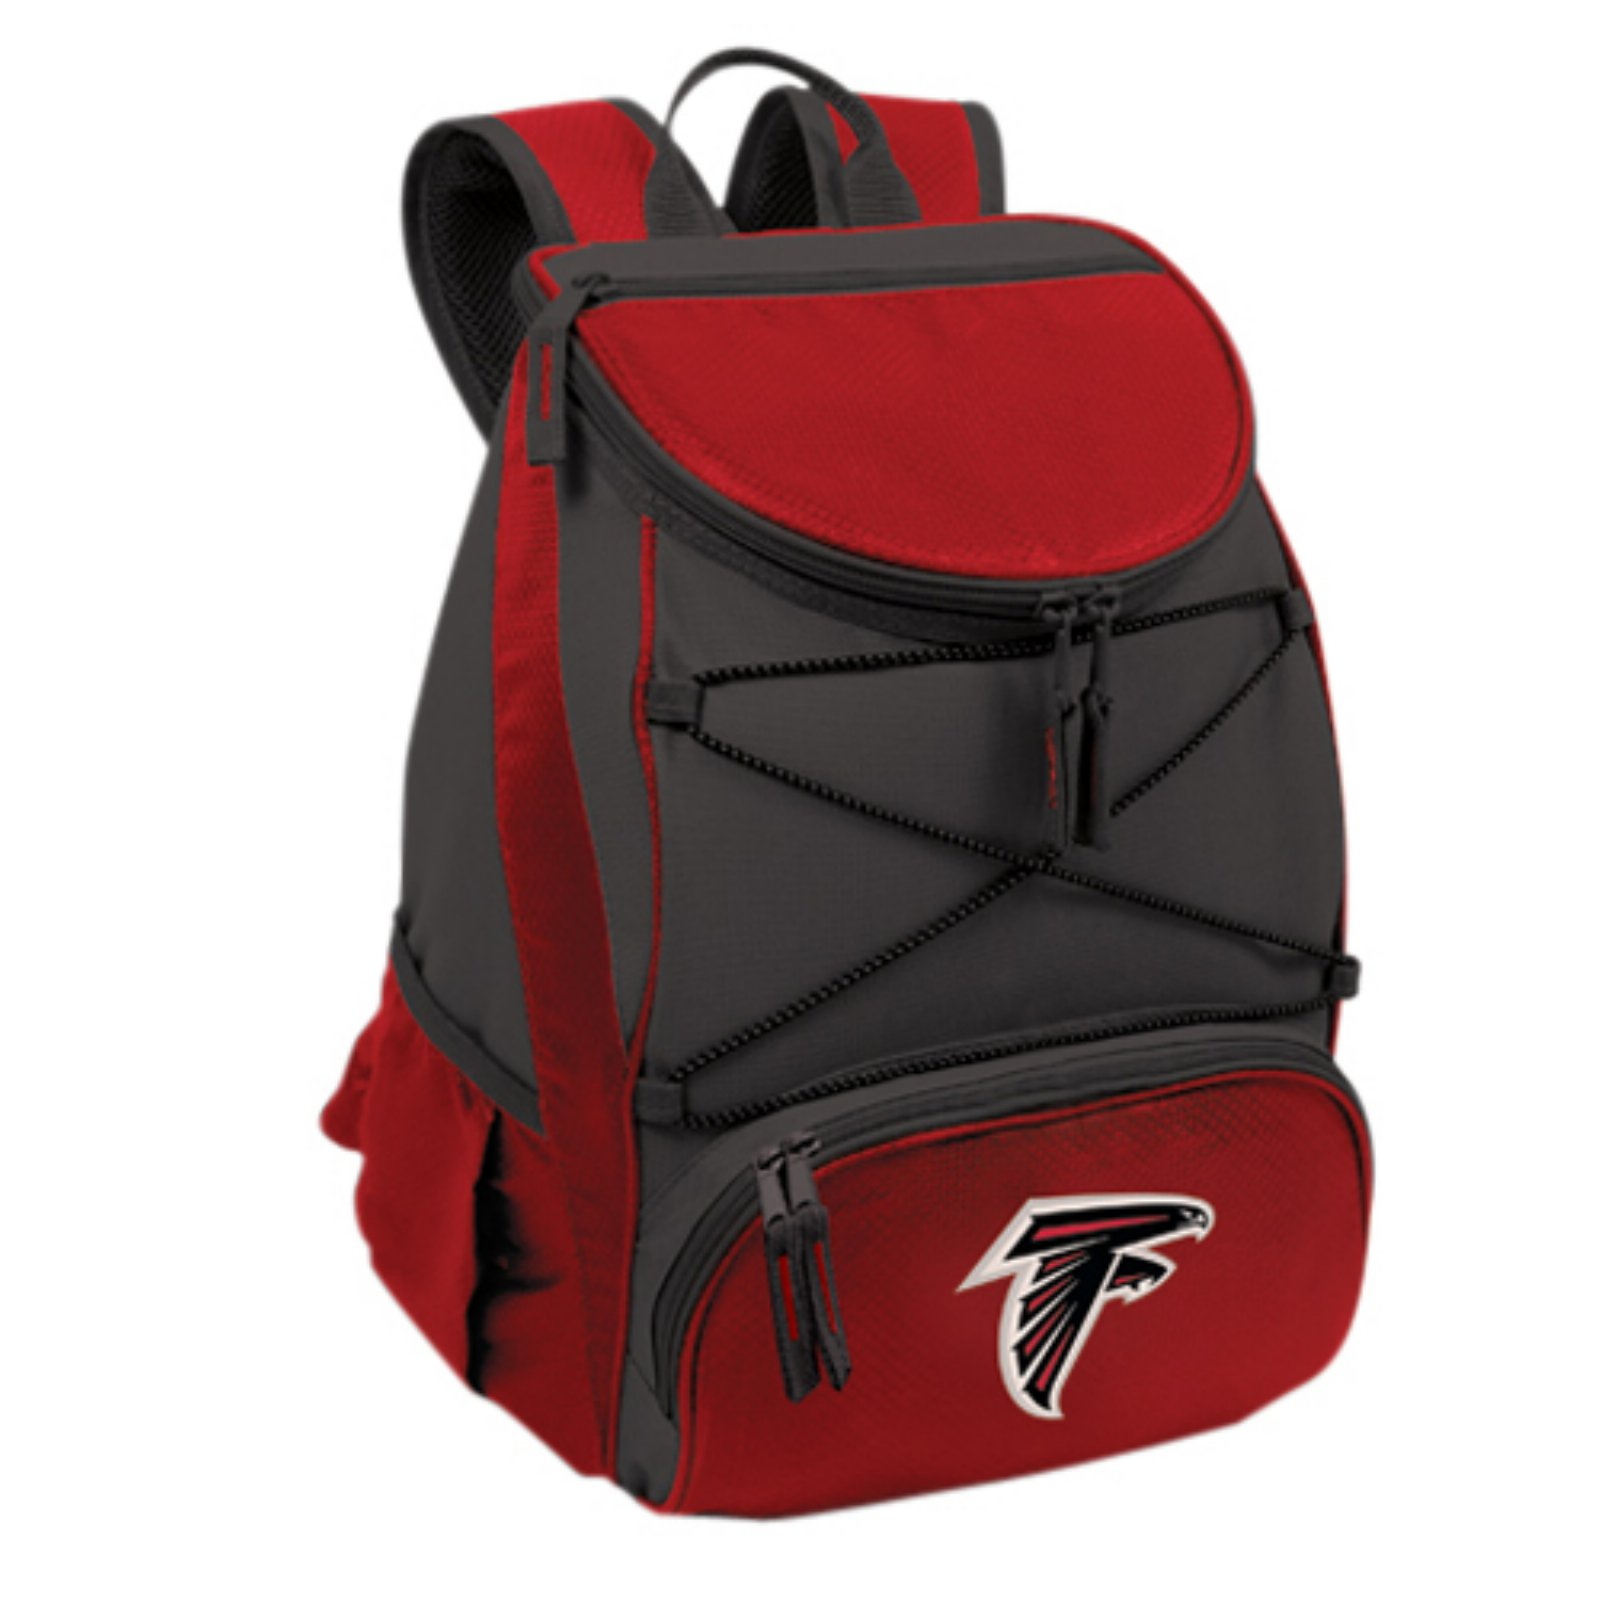 Picnic Time PTX Cooler, Black Atlanta Falcons Digital Print